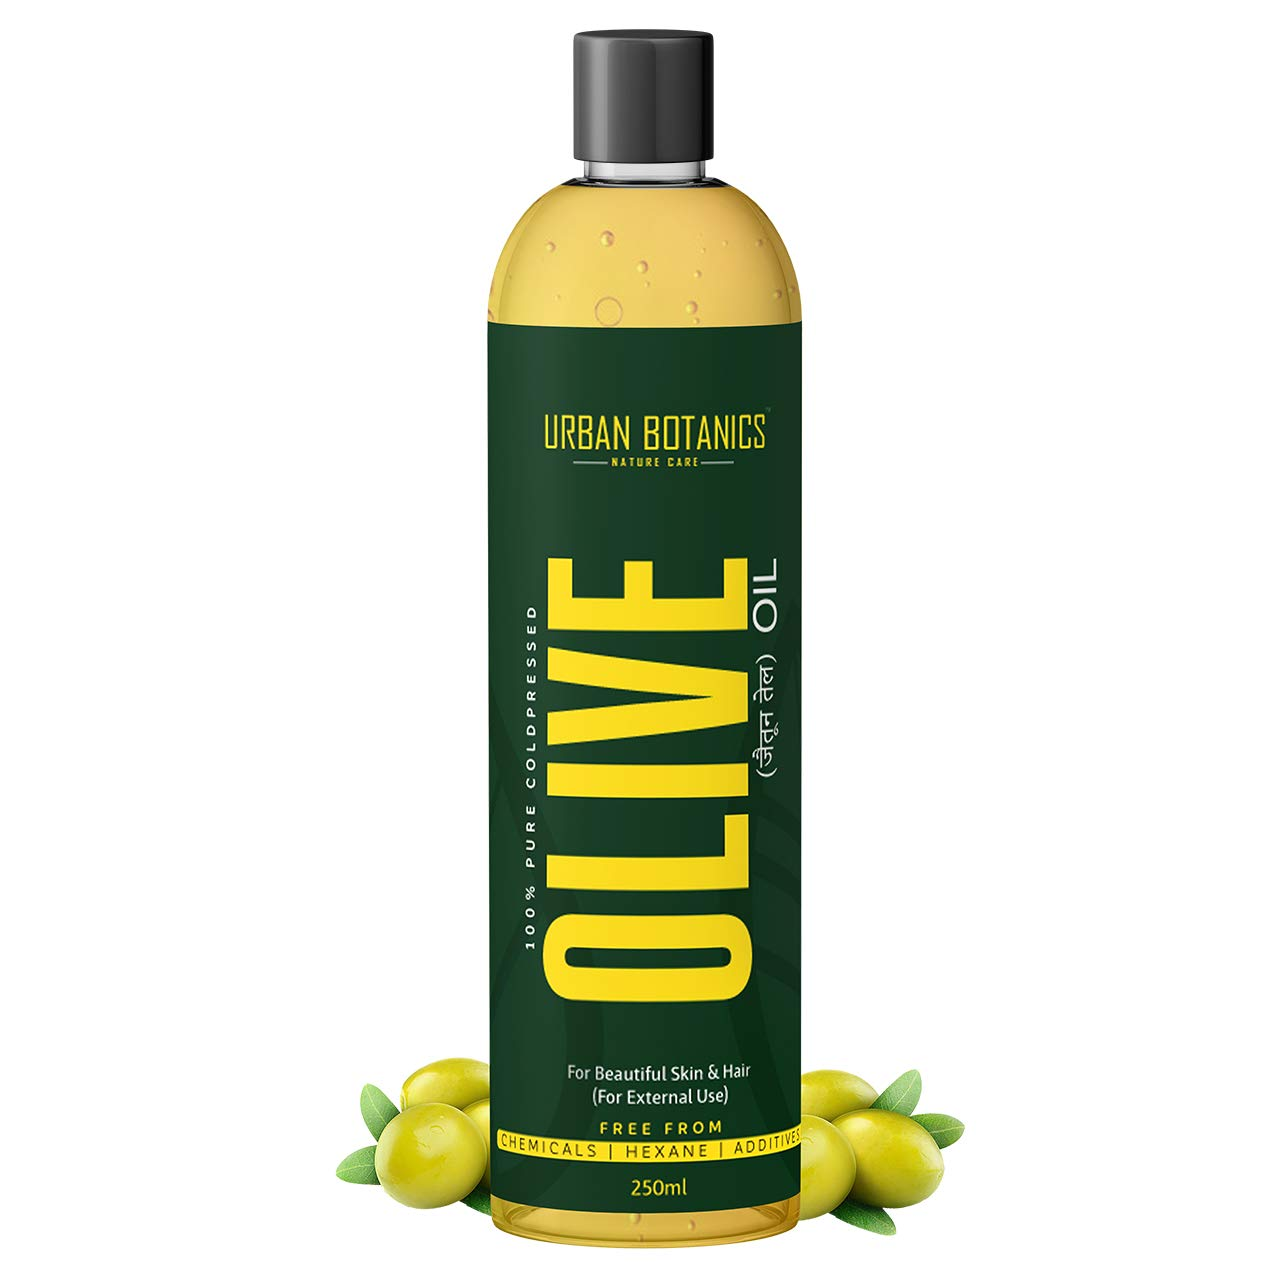 UrbanBotanics® Pure Cold Pressed Olive Oil For Hair and Skin